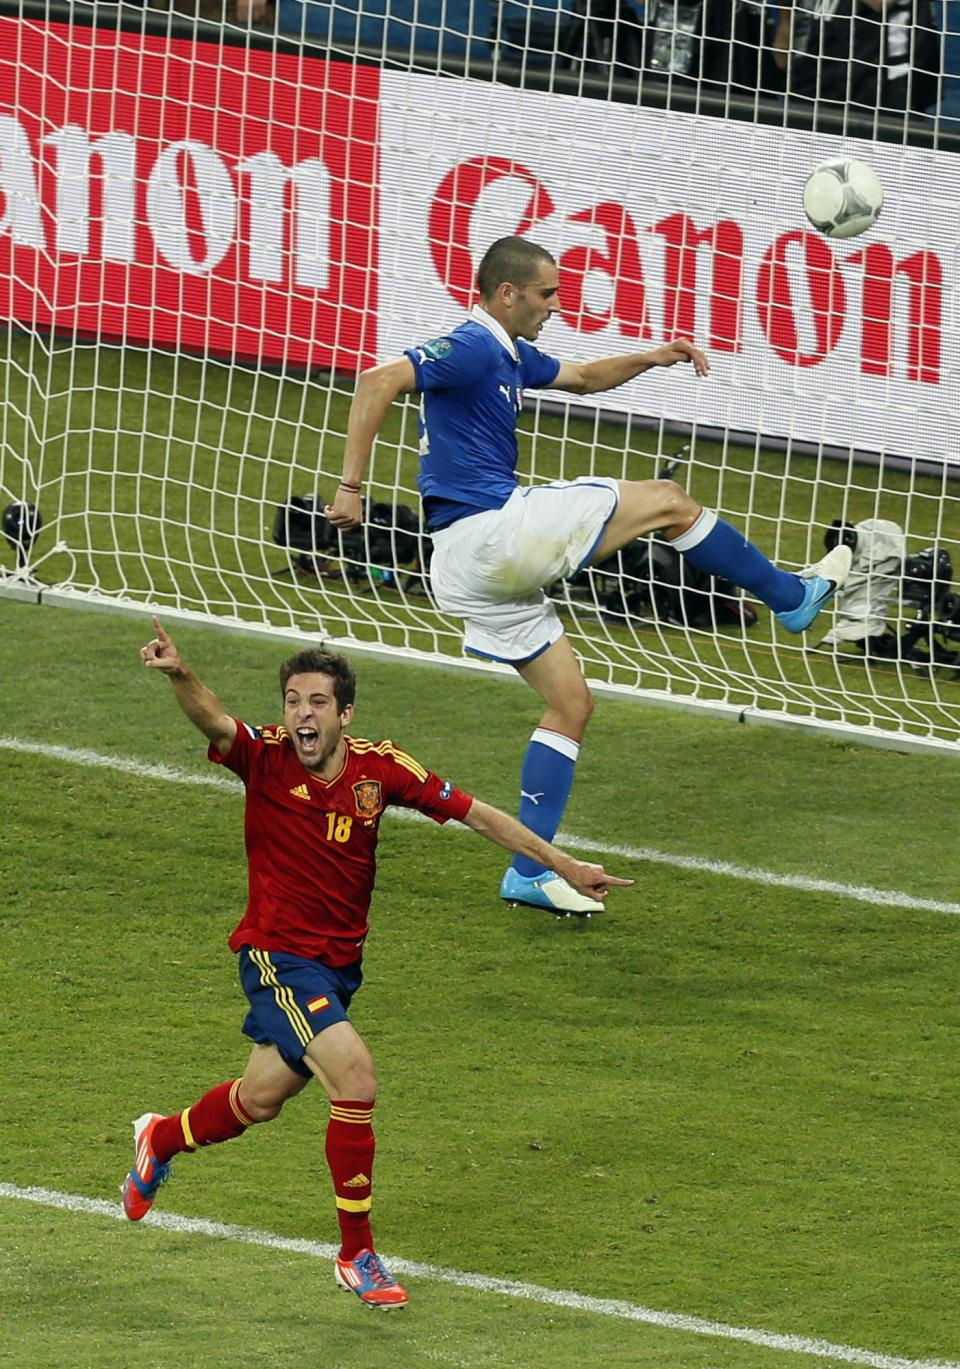 Spain's Jordi Alba celebrates scoring his side's second goal as Italy's Leonardo Bonucci kicks the ball in anger during the Euro 2012 soccer championship final  between Spain and Italy in Kiev, Ukraine, Sunday, July 1, 2012. (AP Photo/Vadim Ghirda)